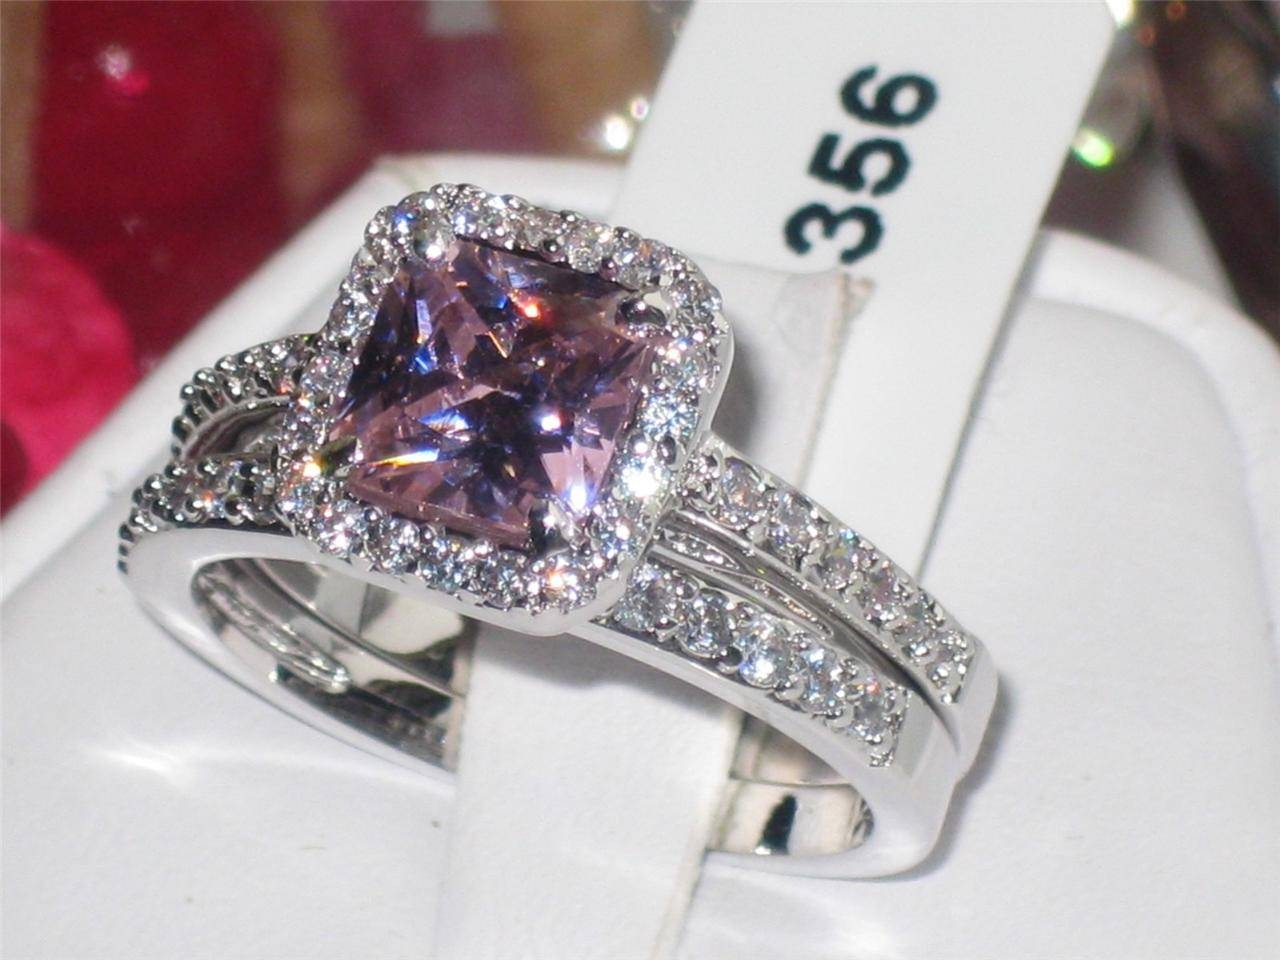 Wedding Rings : Pink Sapphire Engagement Rings Sapphire Rings For Recent Pink Sapphire Diamond Wedding Bands (View 14 of 15)